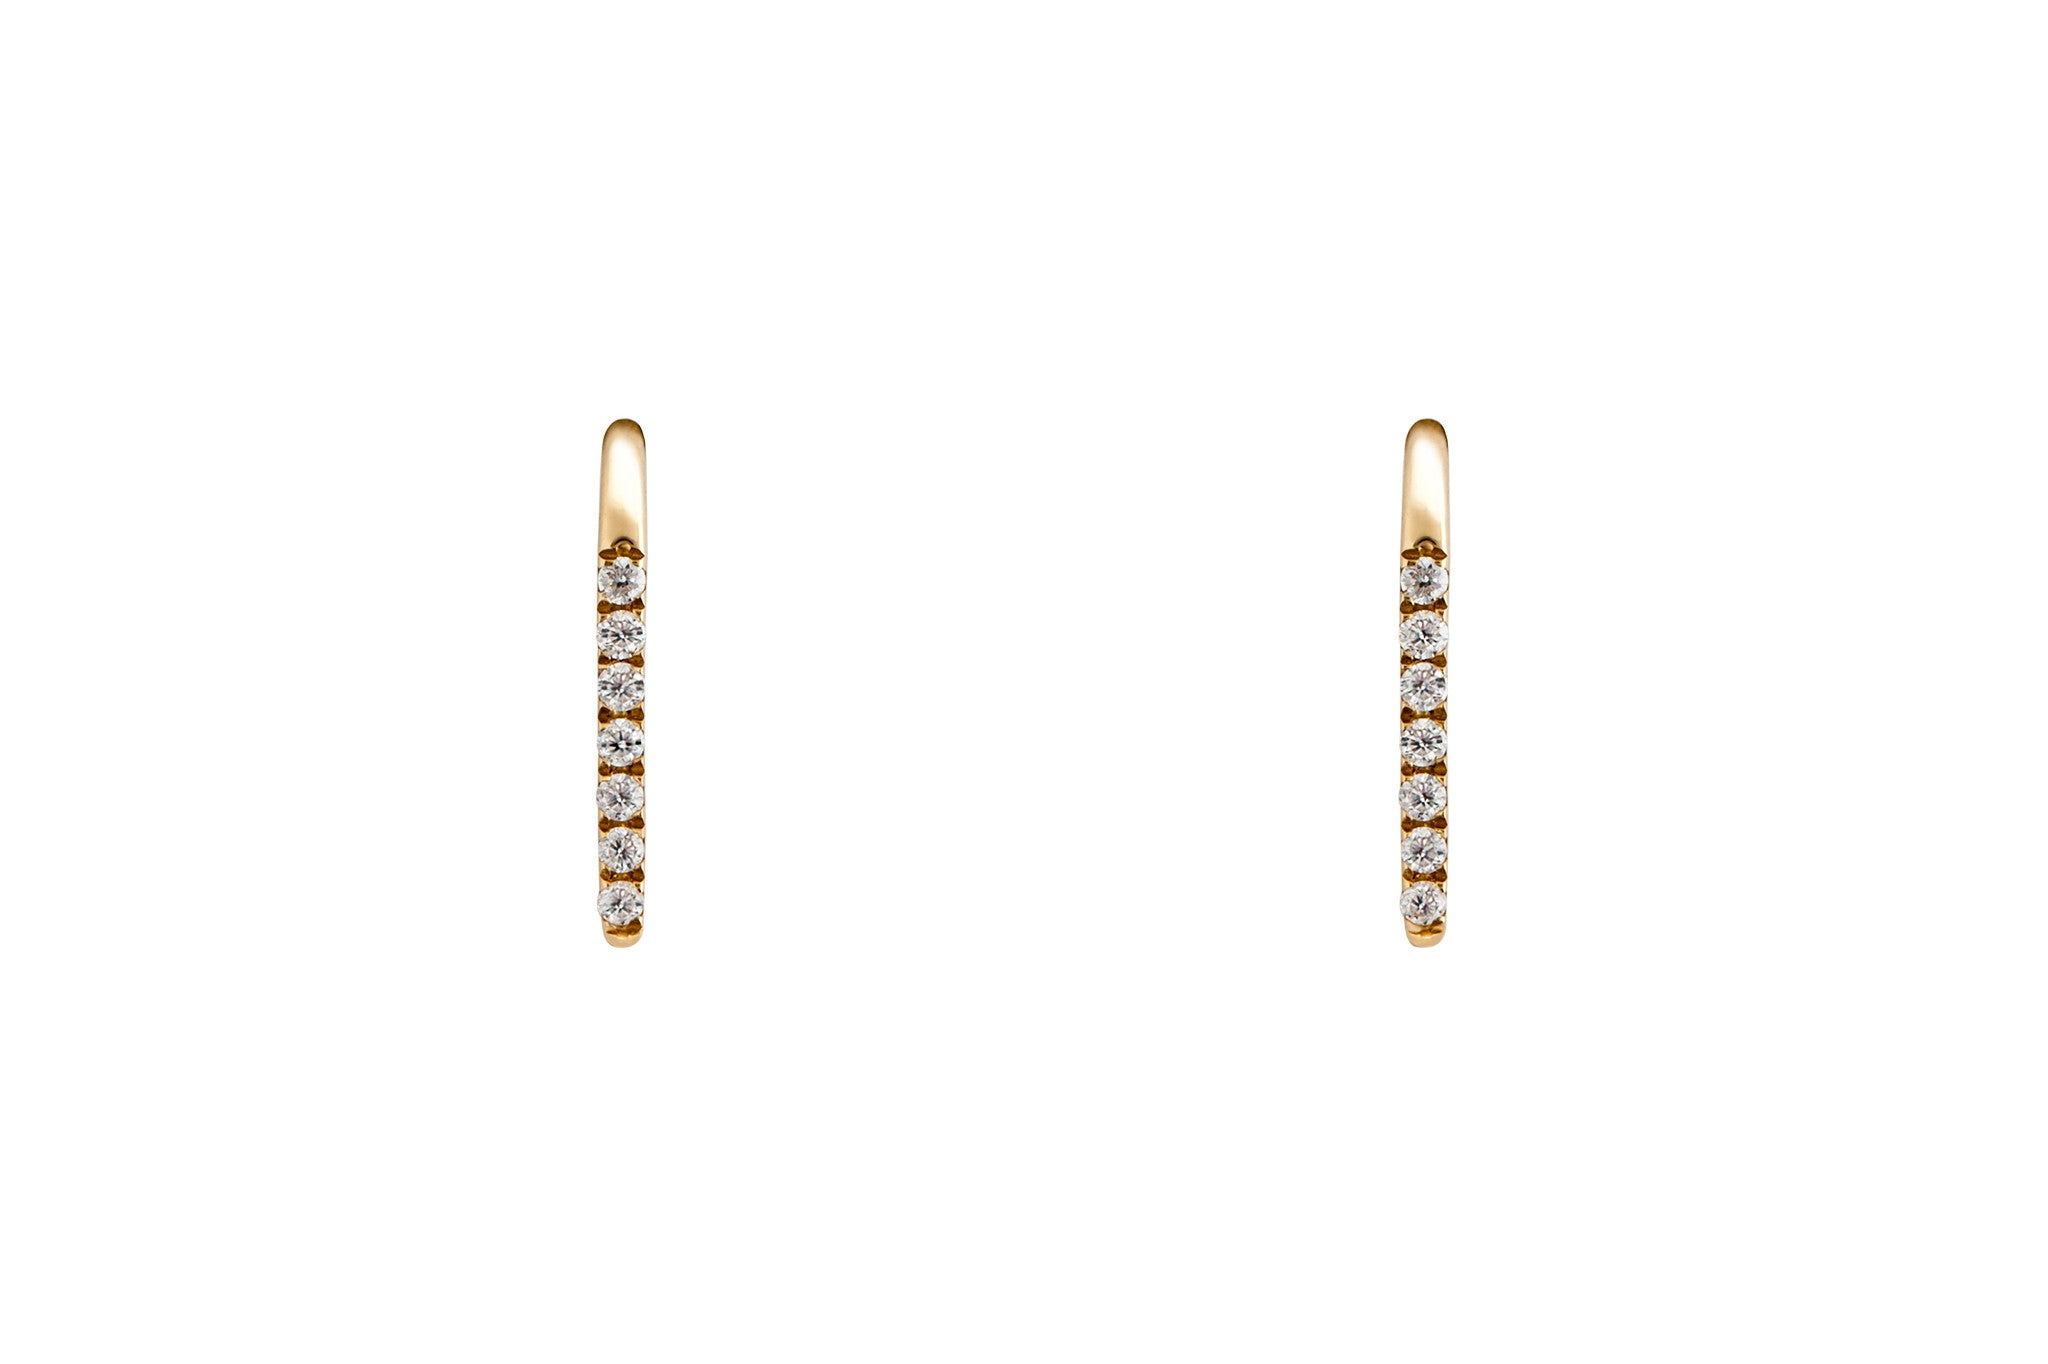 14k Gold Diamond Bar Ear Climber E2279